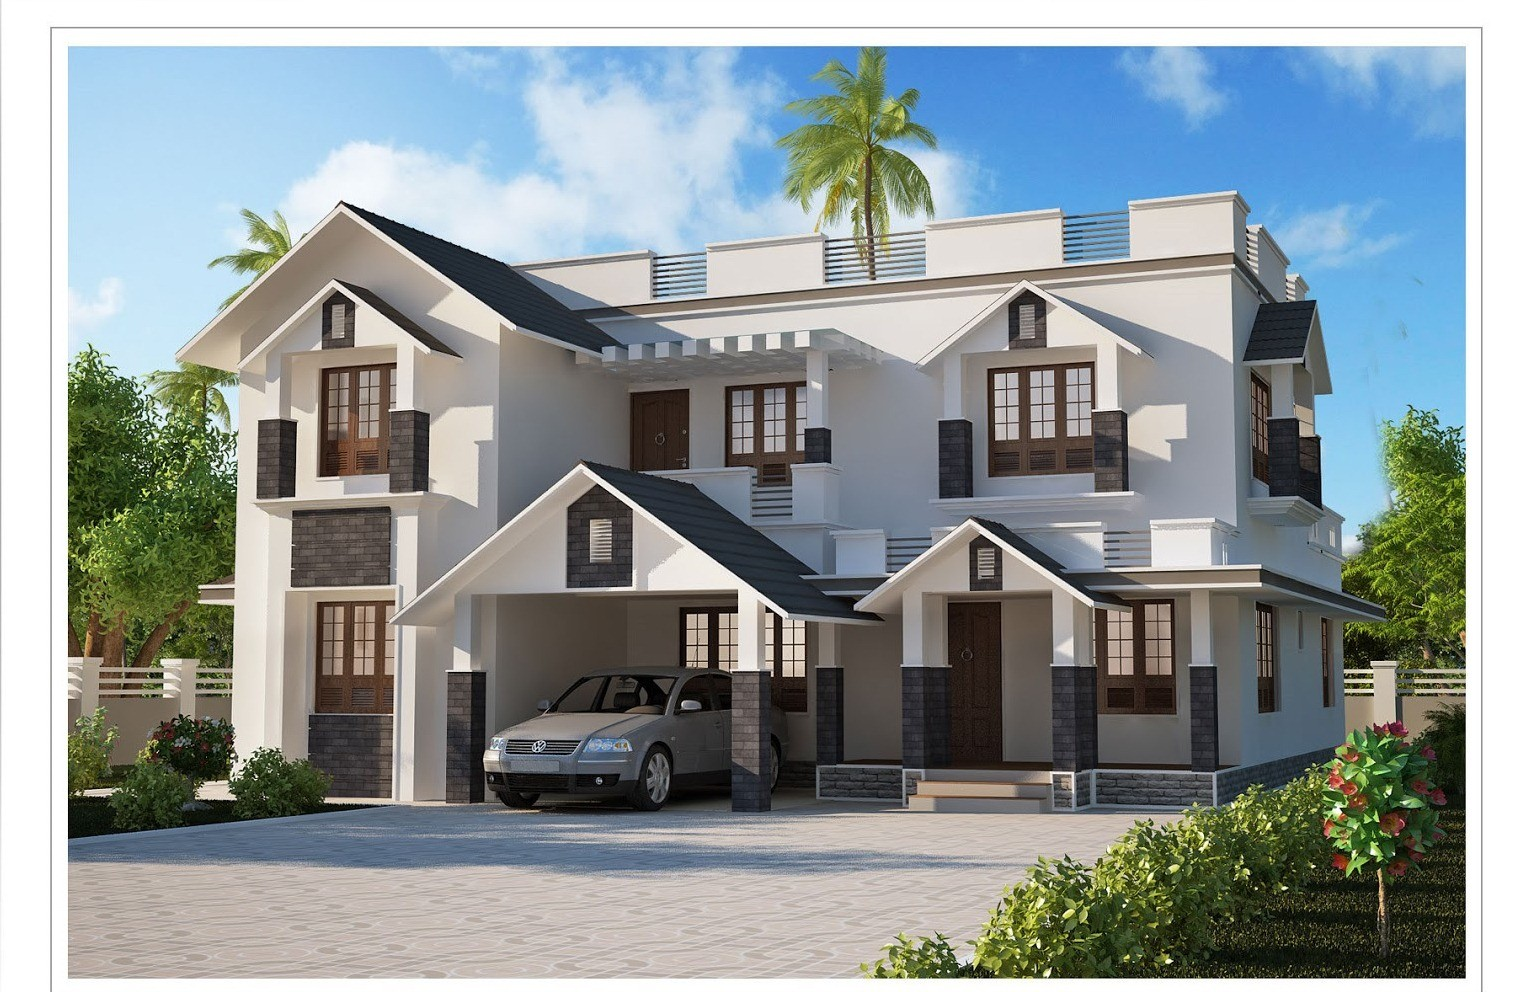 kerala home designs photos in single floor - 44+ New Small House Design In Kerala Pictures